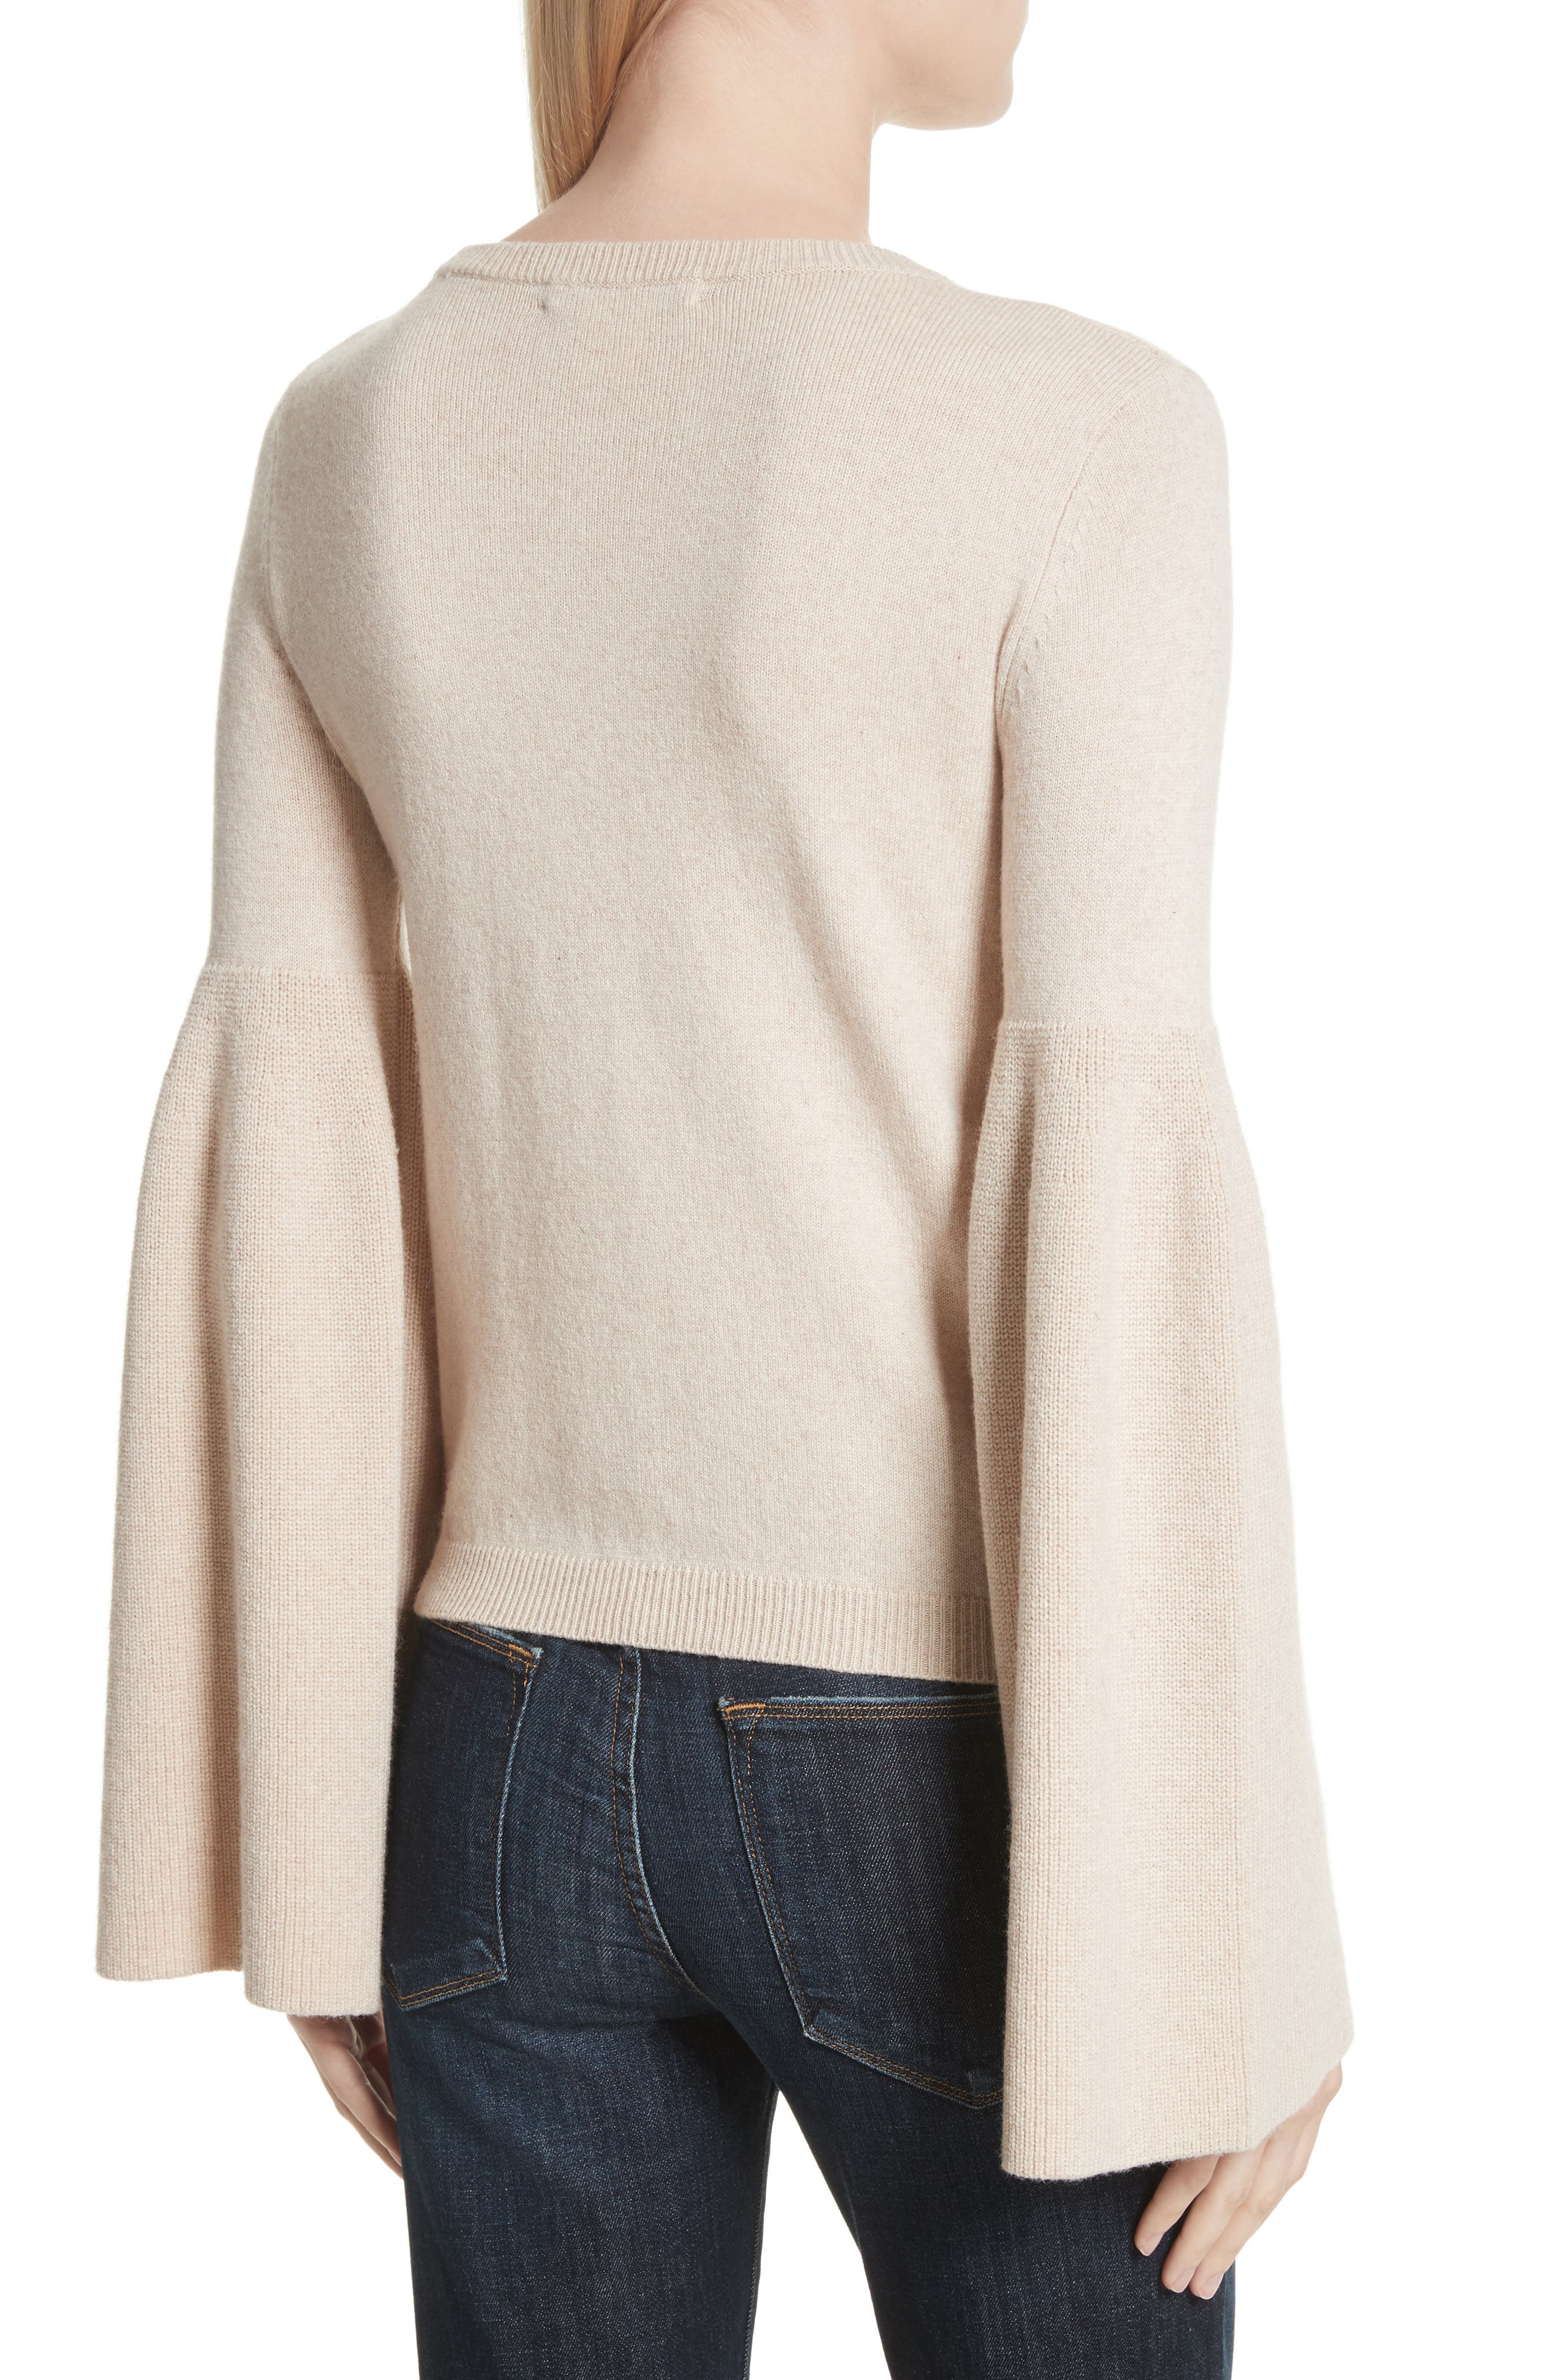 Parson Bell Sleeve Sweater,                             Alternate thumbnail 2, color,                             Nude